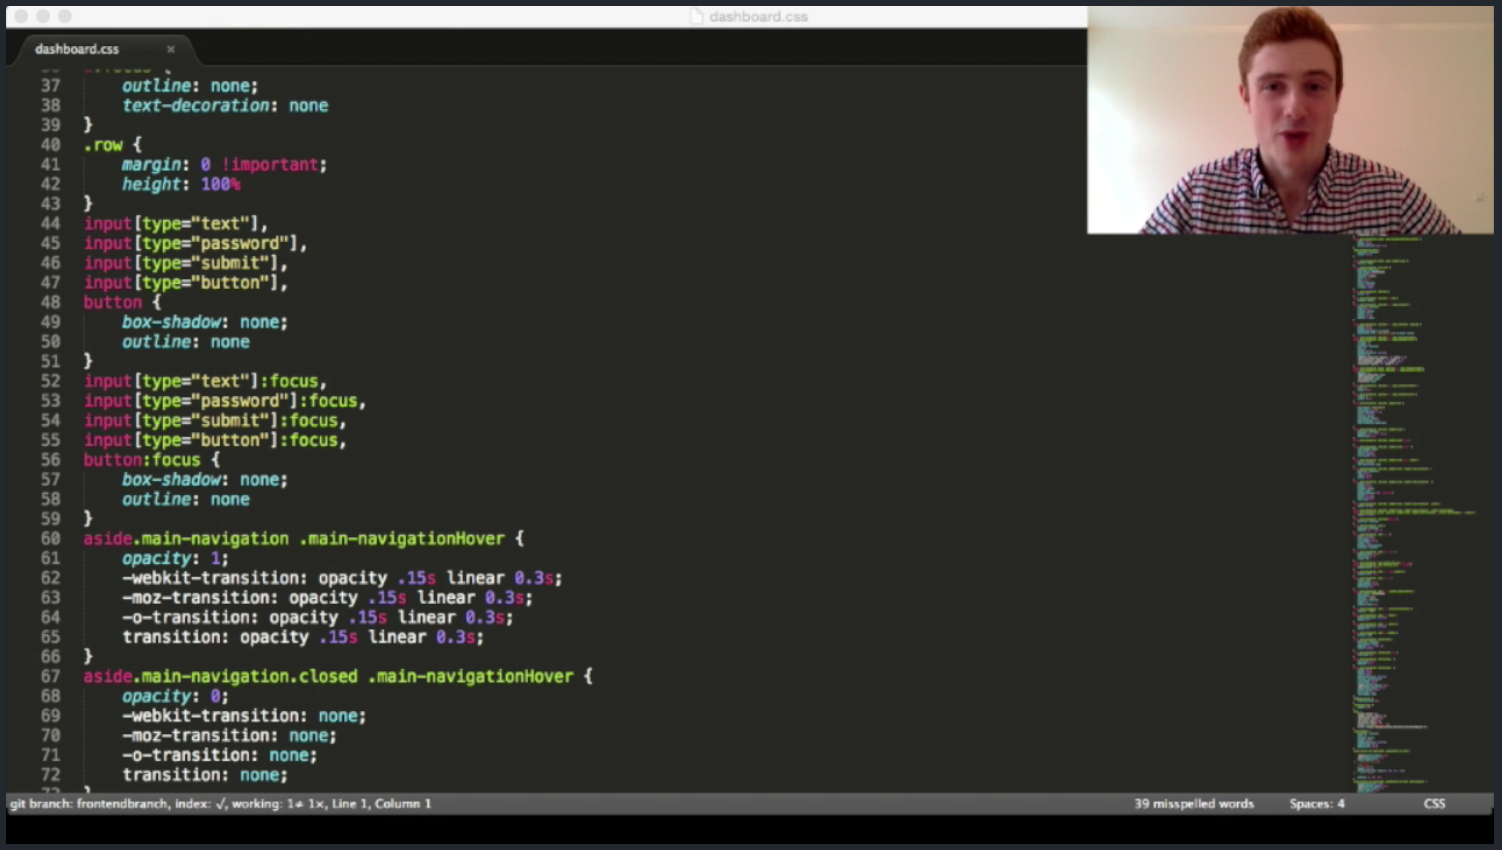 A LiveCoding.tv session with video enabled